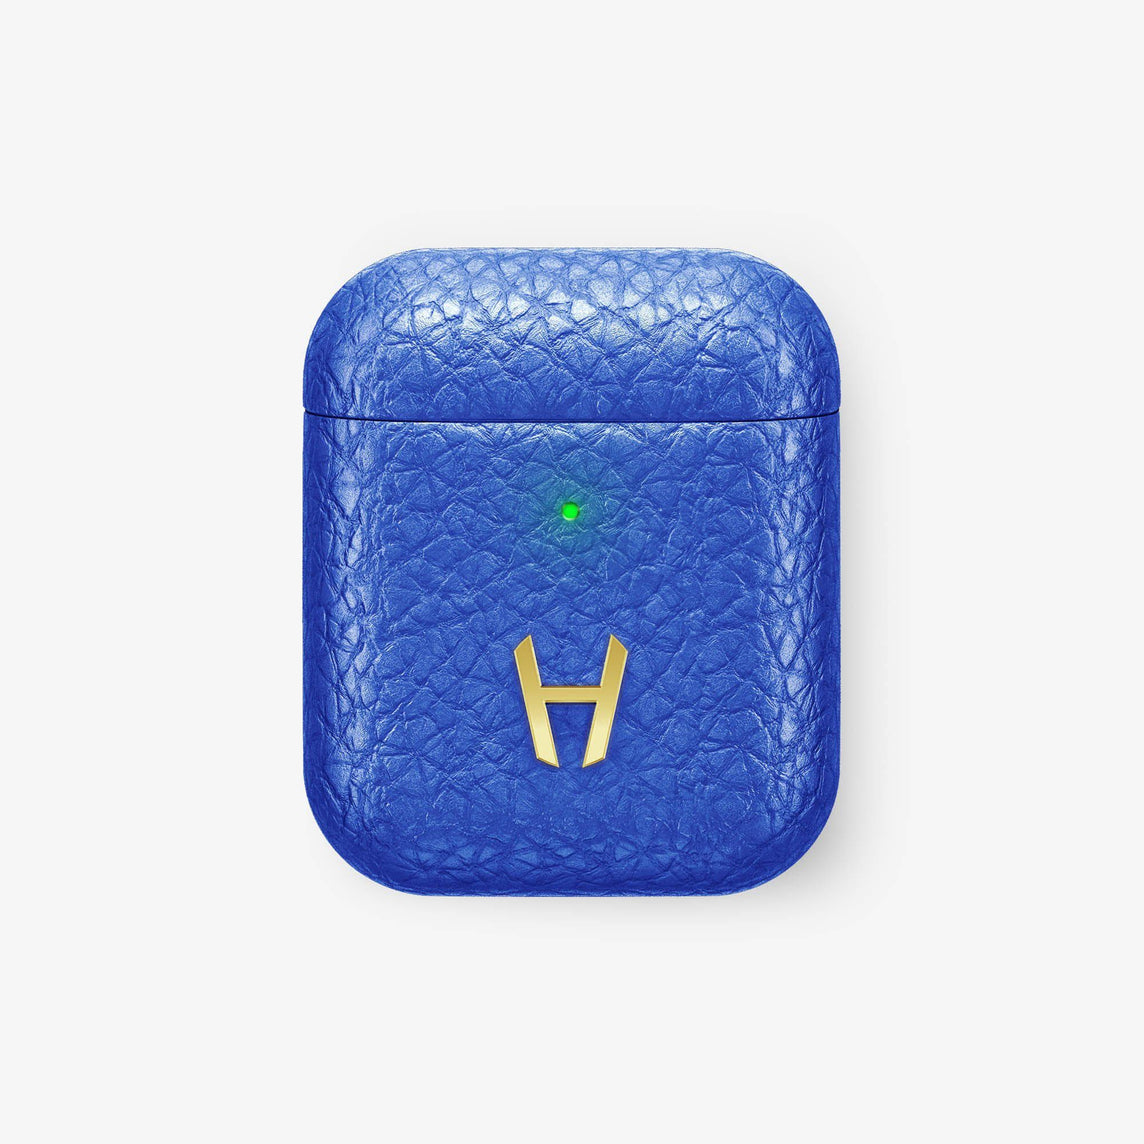 Calfskin [Hadoro AirPods] [model:airpods-with-w-charging] [colour:peony-blue] [finishing:yellow-gold] without-personalization